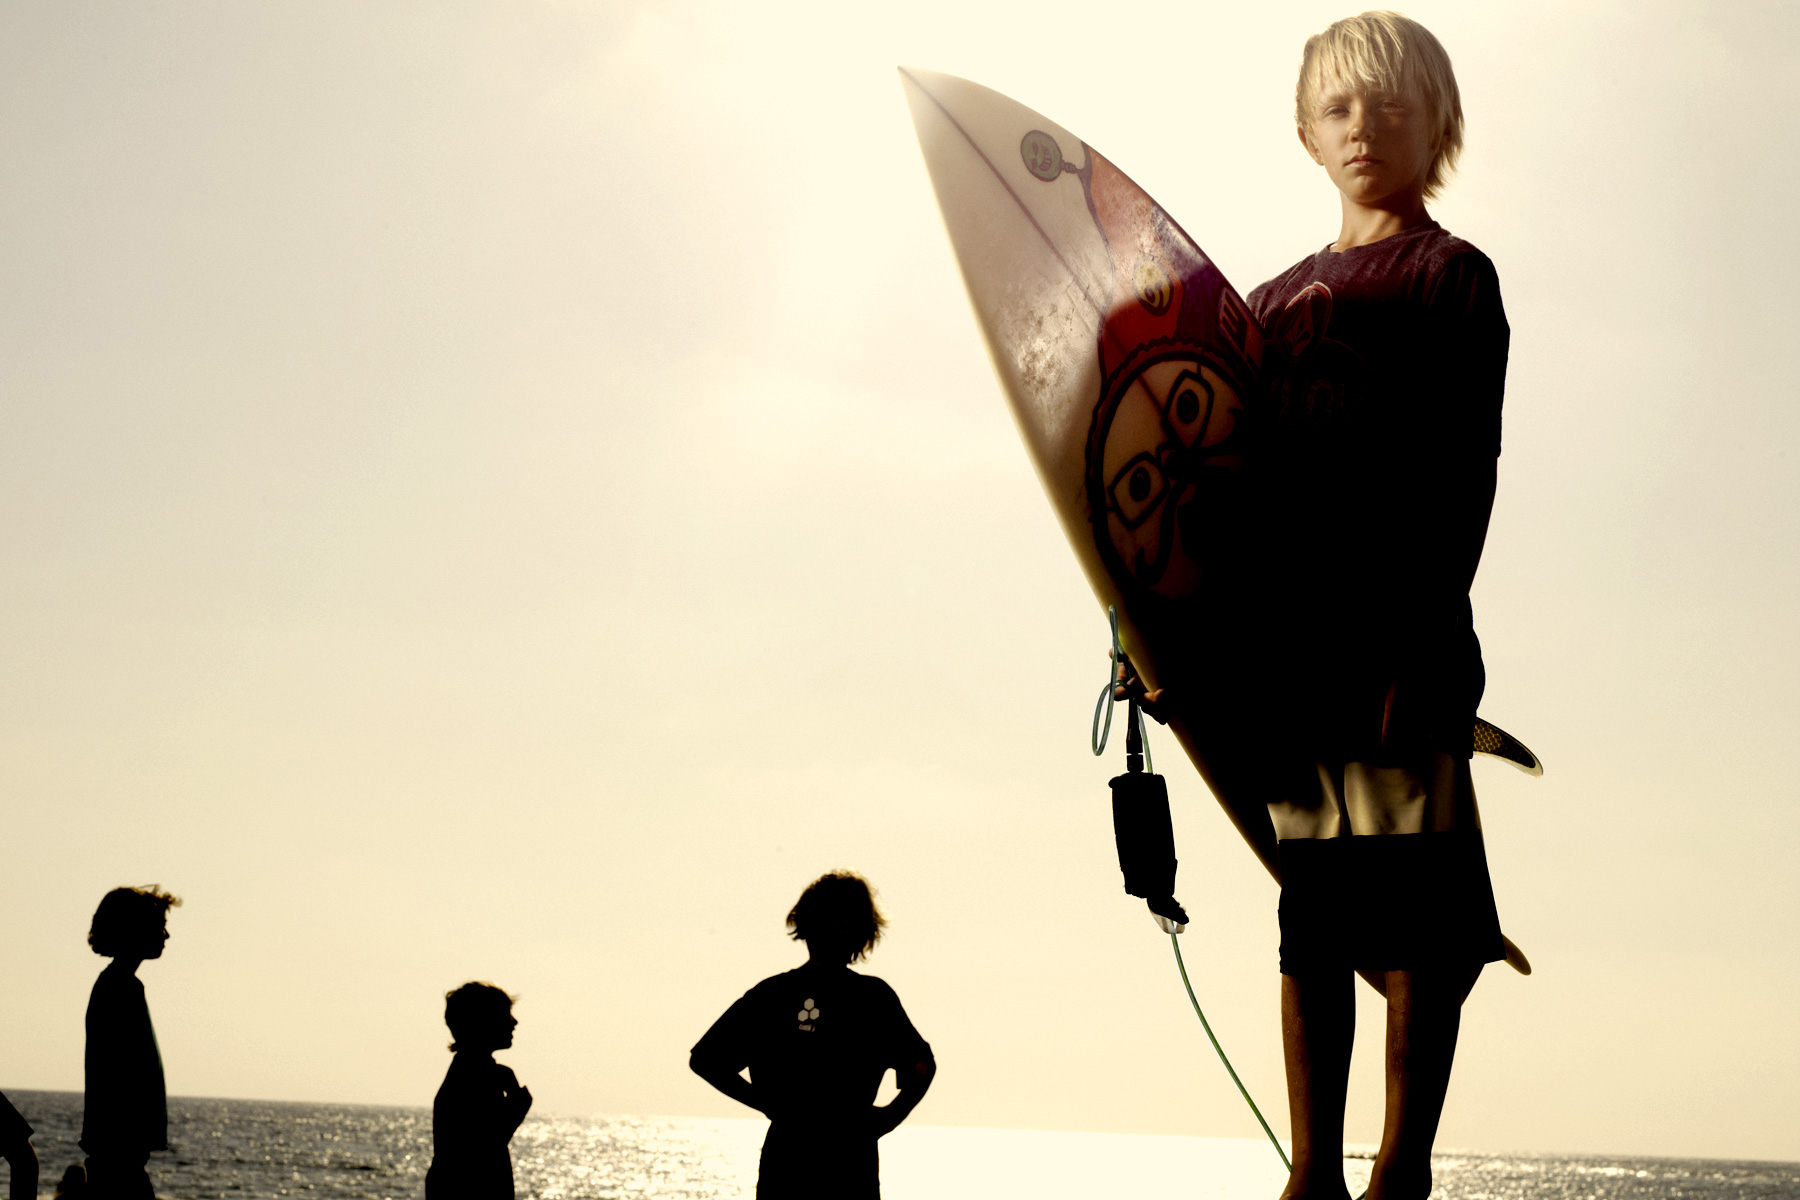 Surf Kids of San Clemente photographed by Scott Council